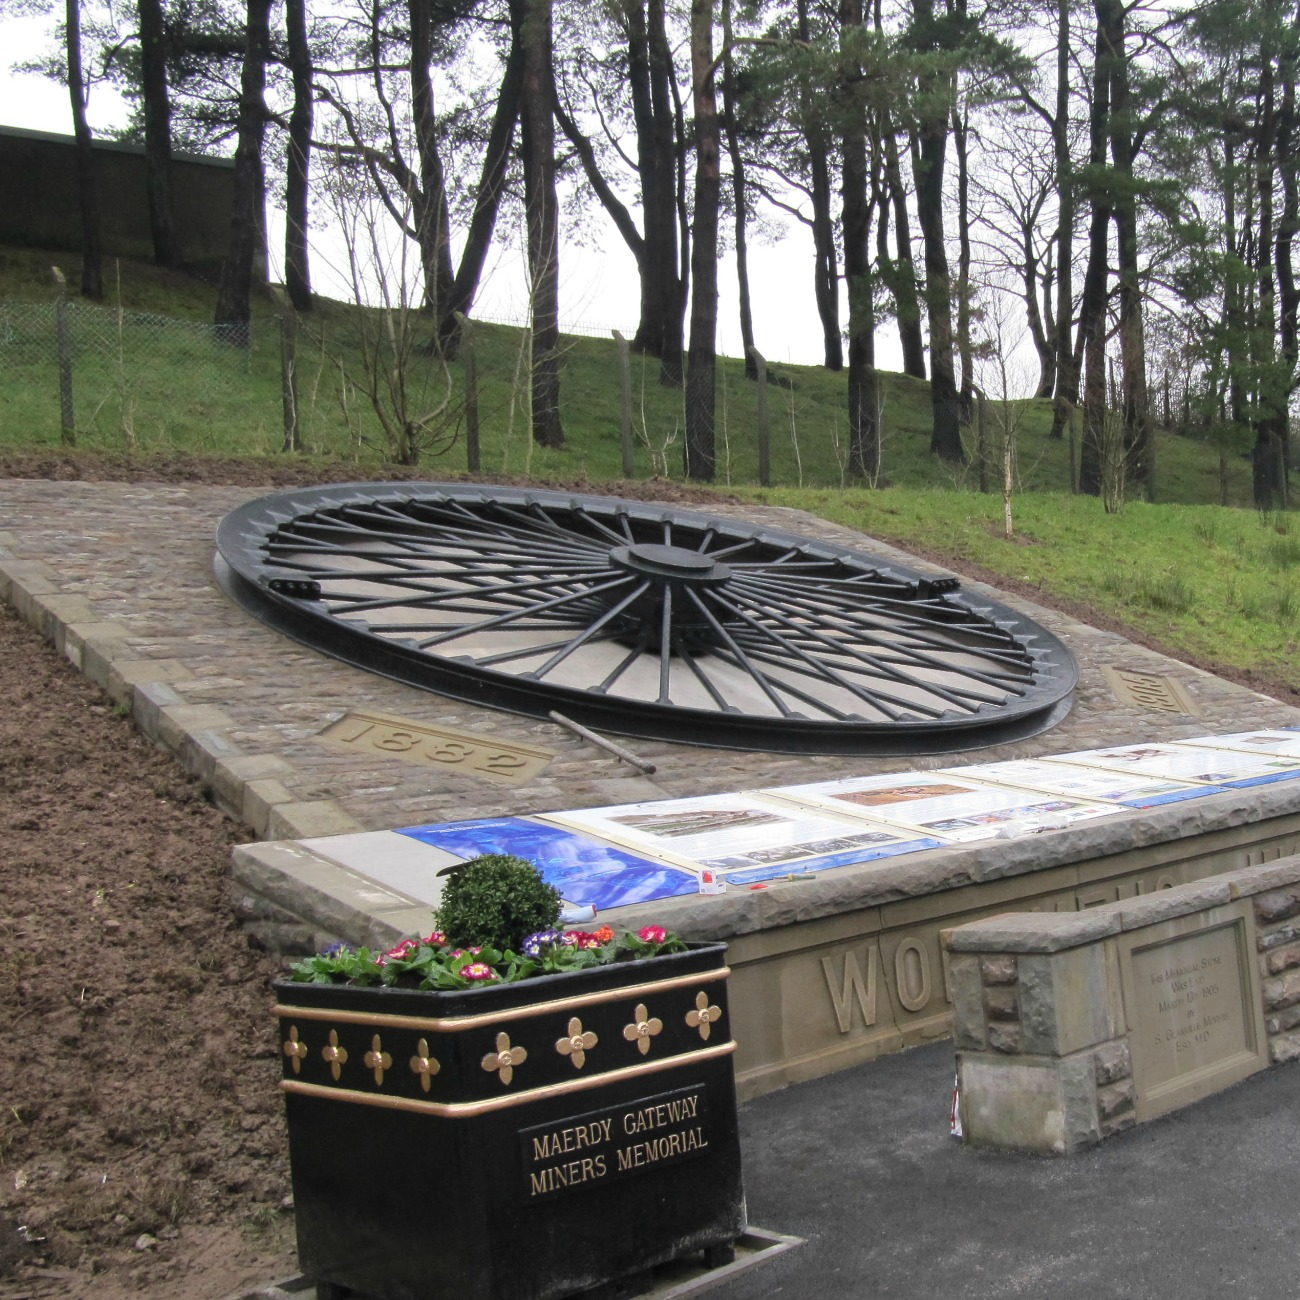 The refurbished wheel is now located in the Memorial Garden at the gateway to the Rhondda Valley.